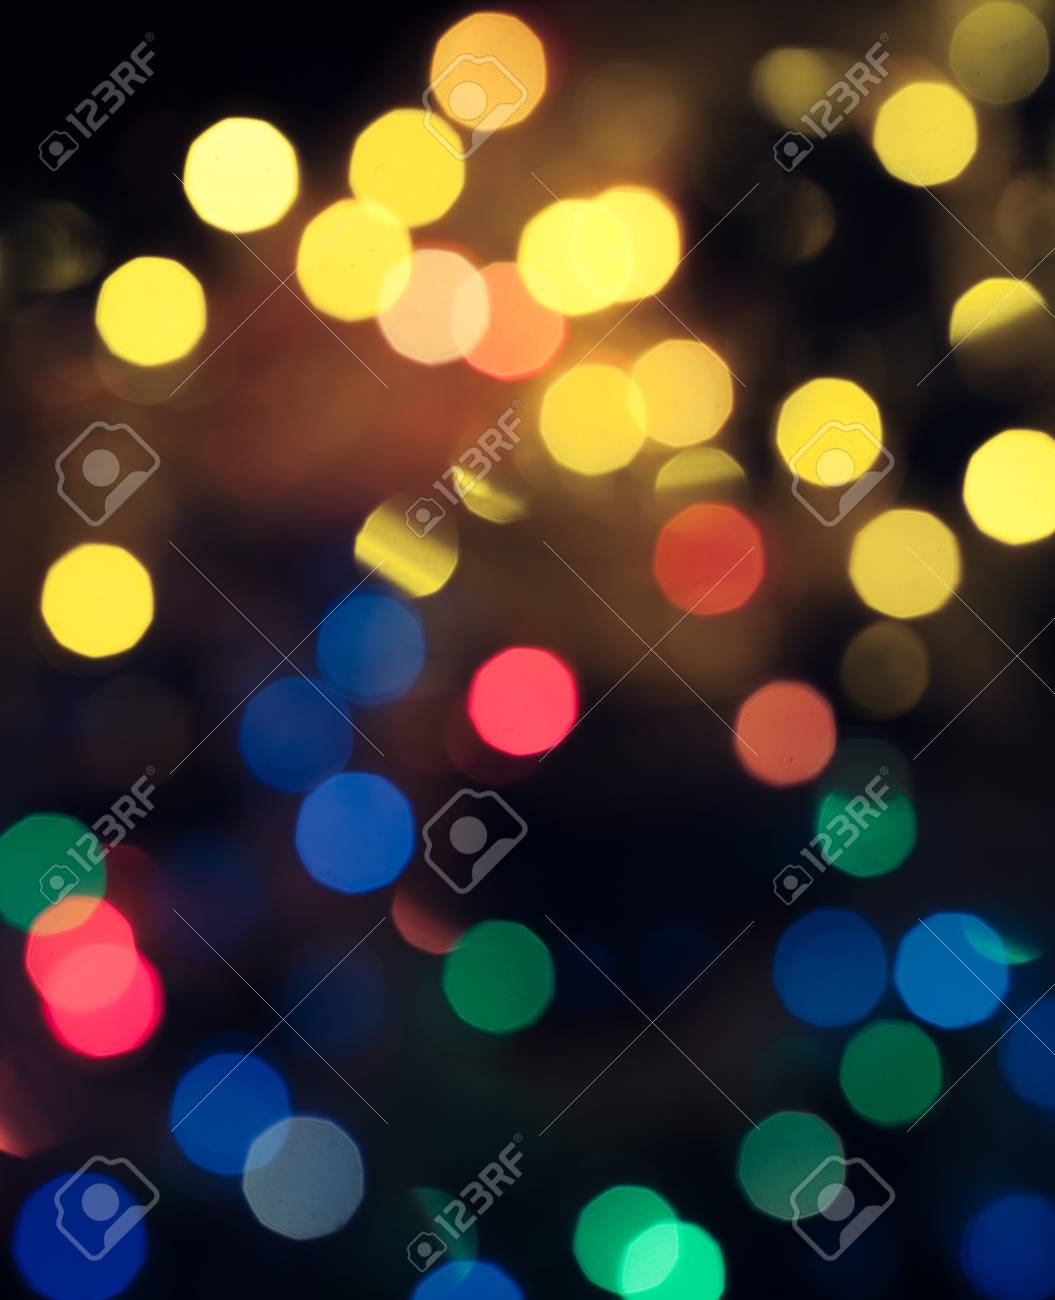 Christmas Wallpaper Abstract Circular Bokeh Of Christmas Lights